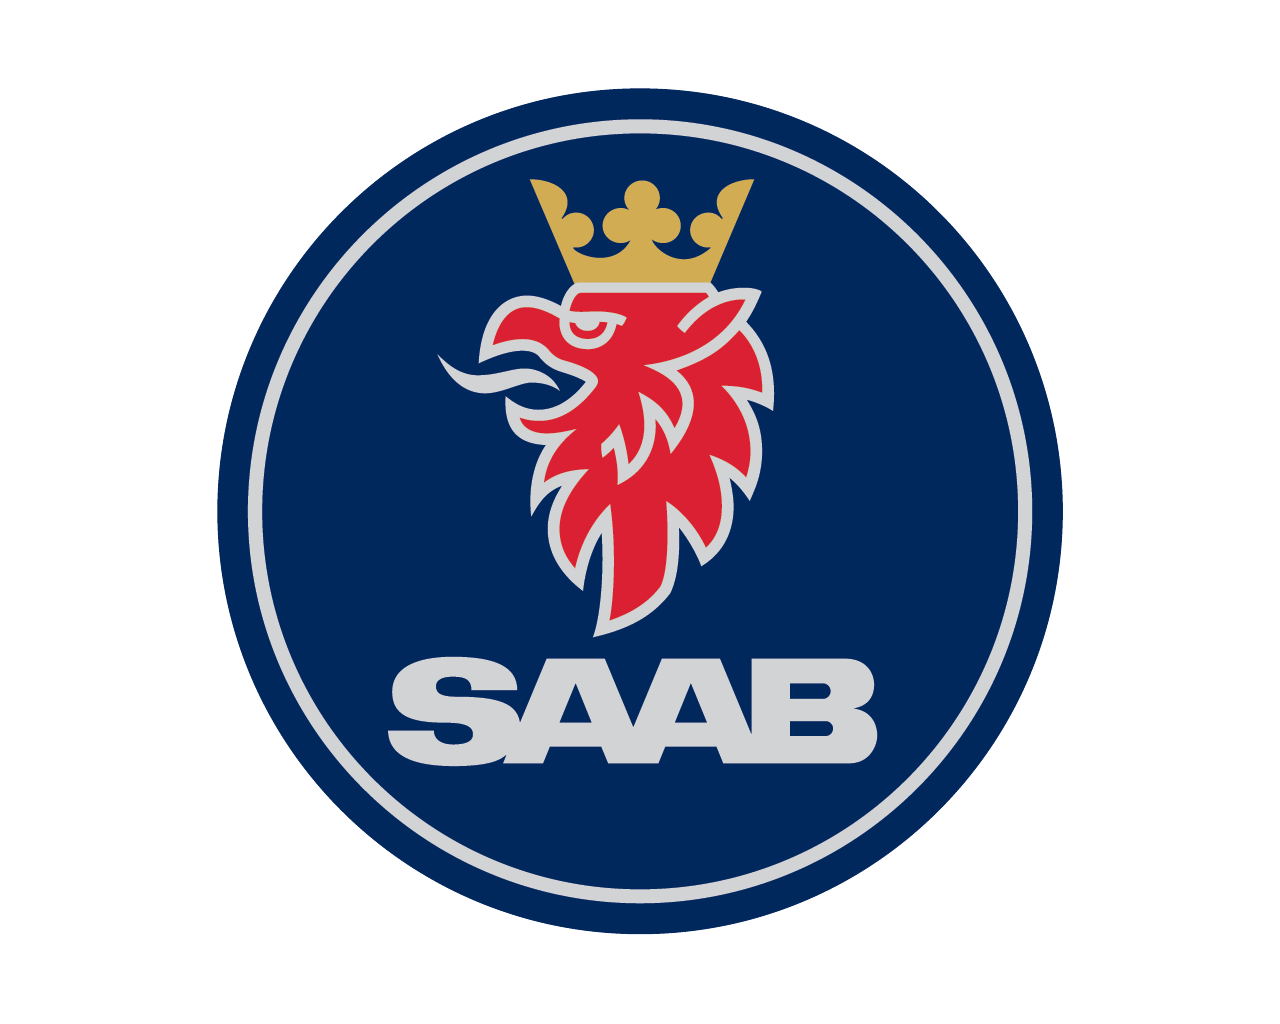 Is Saab Still Making Cars?